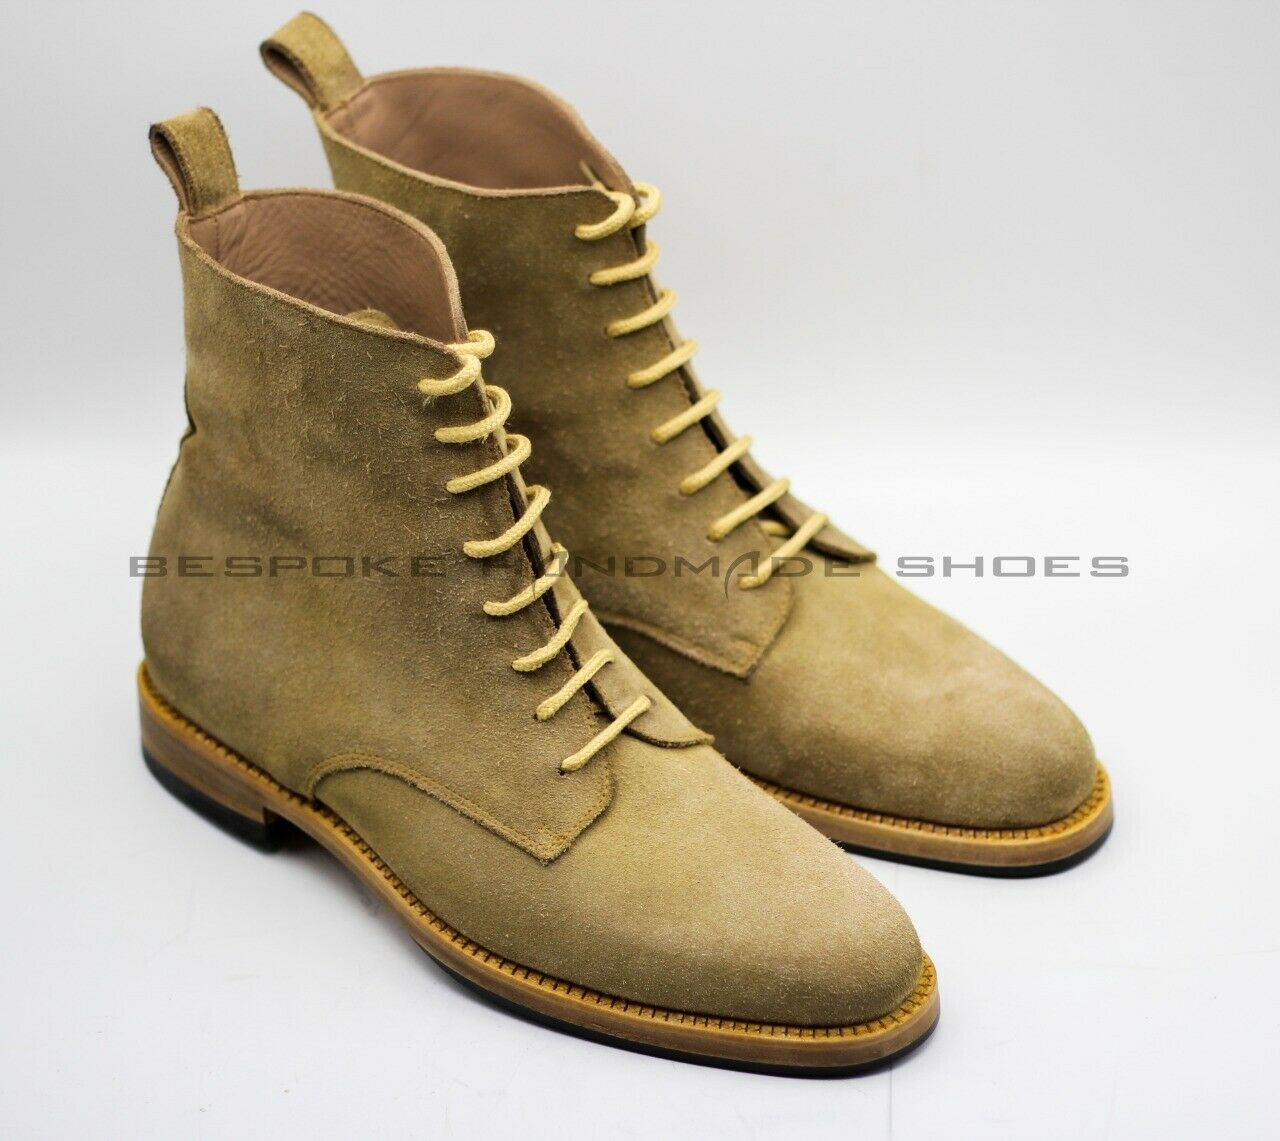 Handmade Men's Genuine Camel Beige Suede Lace-Up Ankle Casual Boots